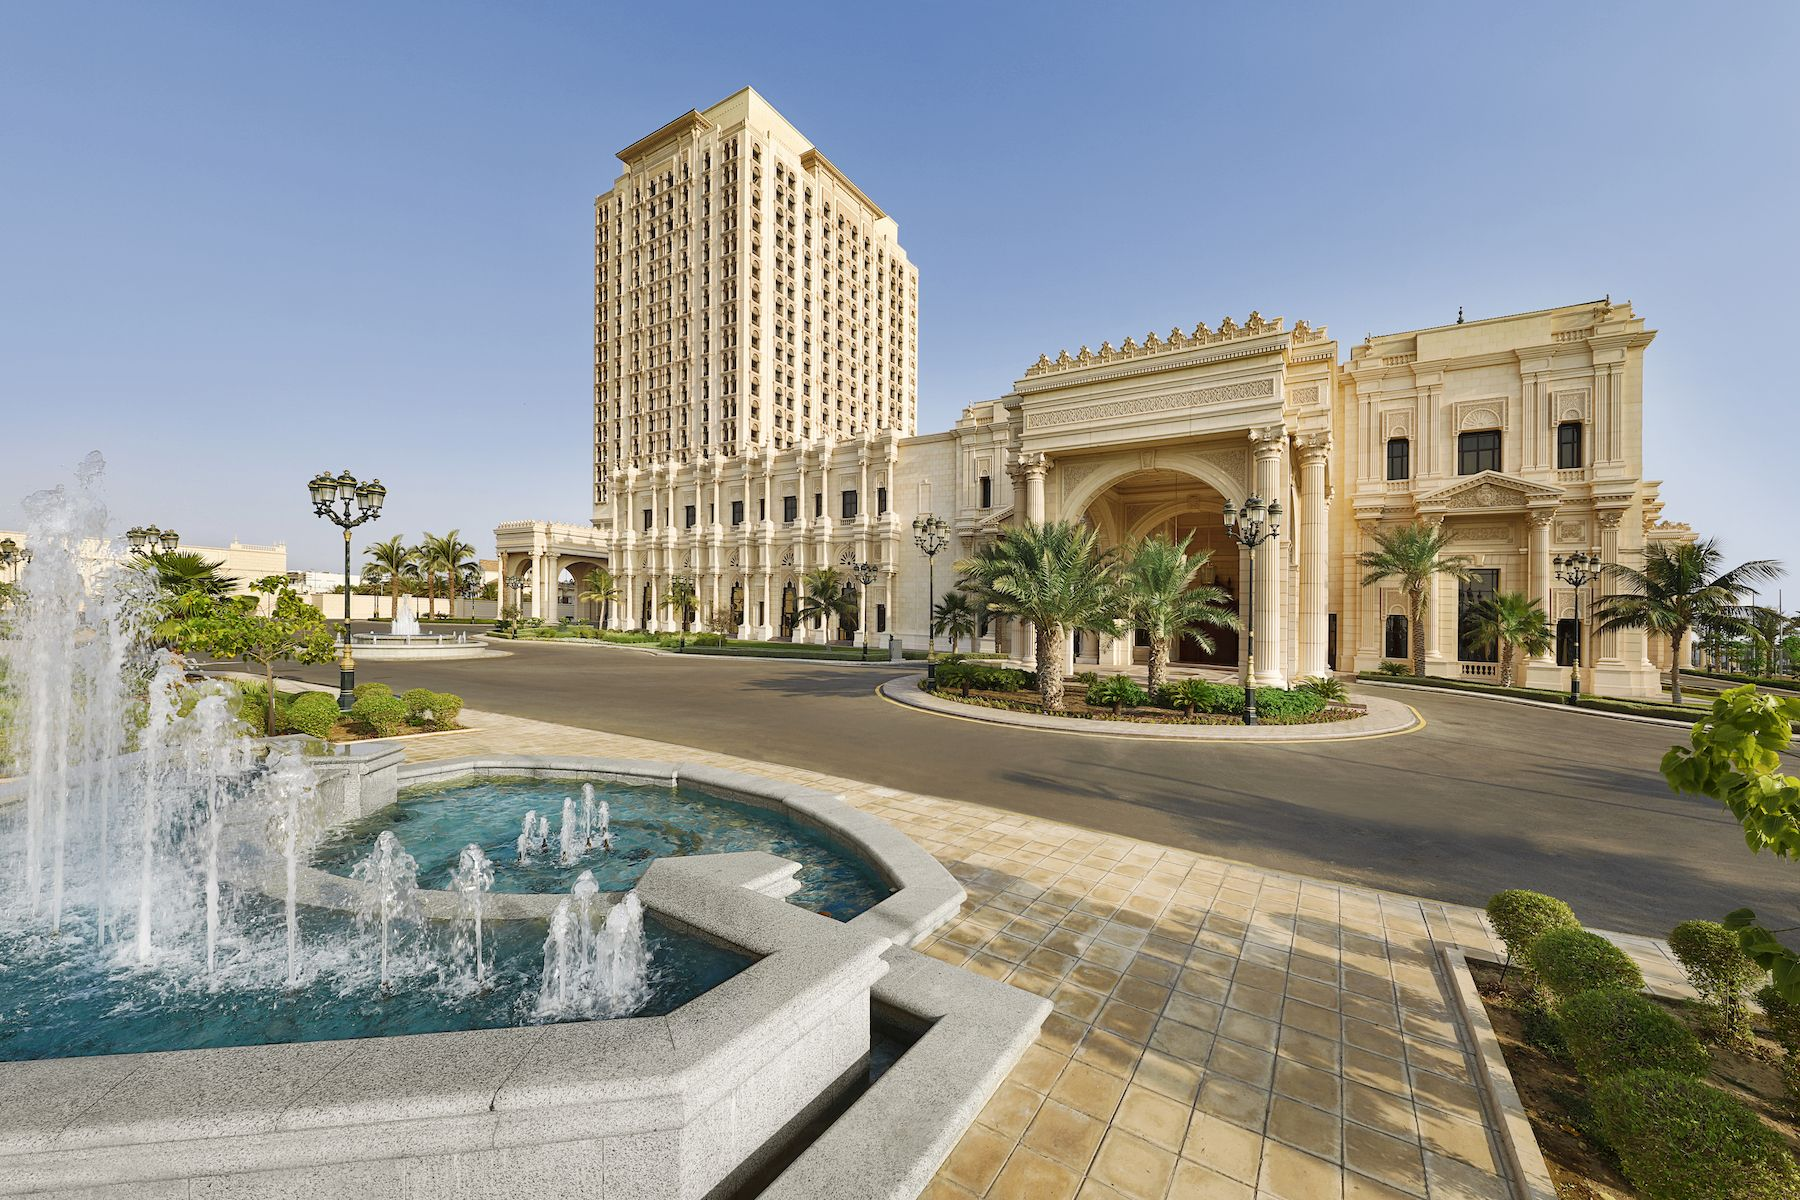 Fountains And Gardens Planned On A Classic French Layout Surround The Ritz Carlton Jeddah Jeddah Luxury Hotel Ritz Carlton